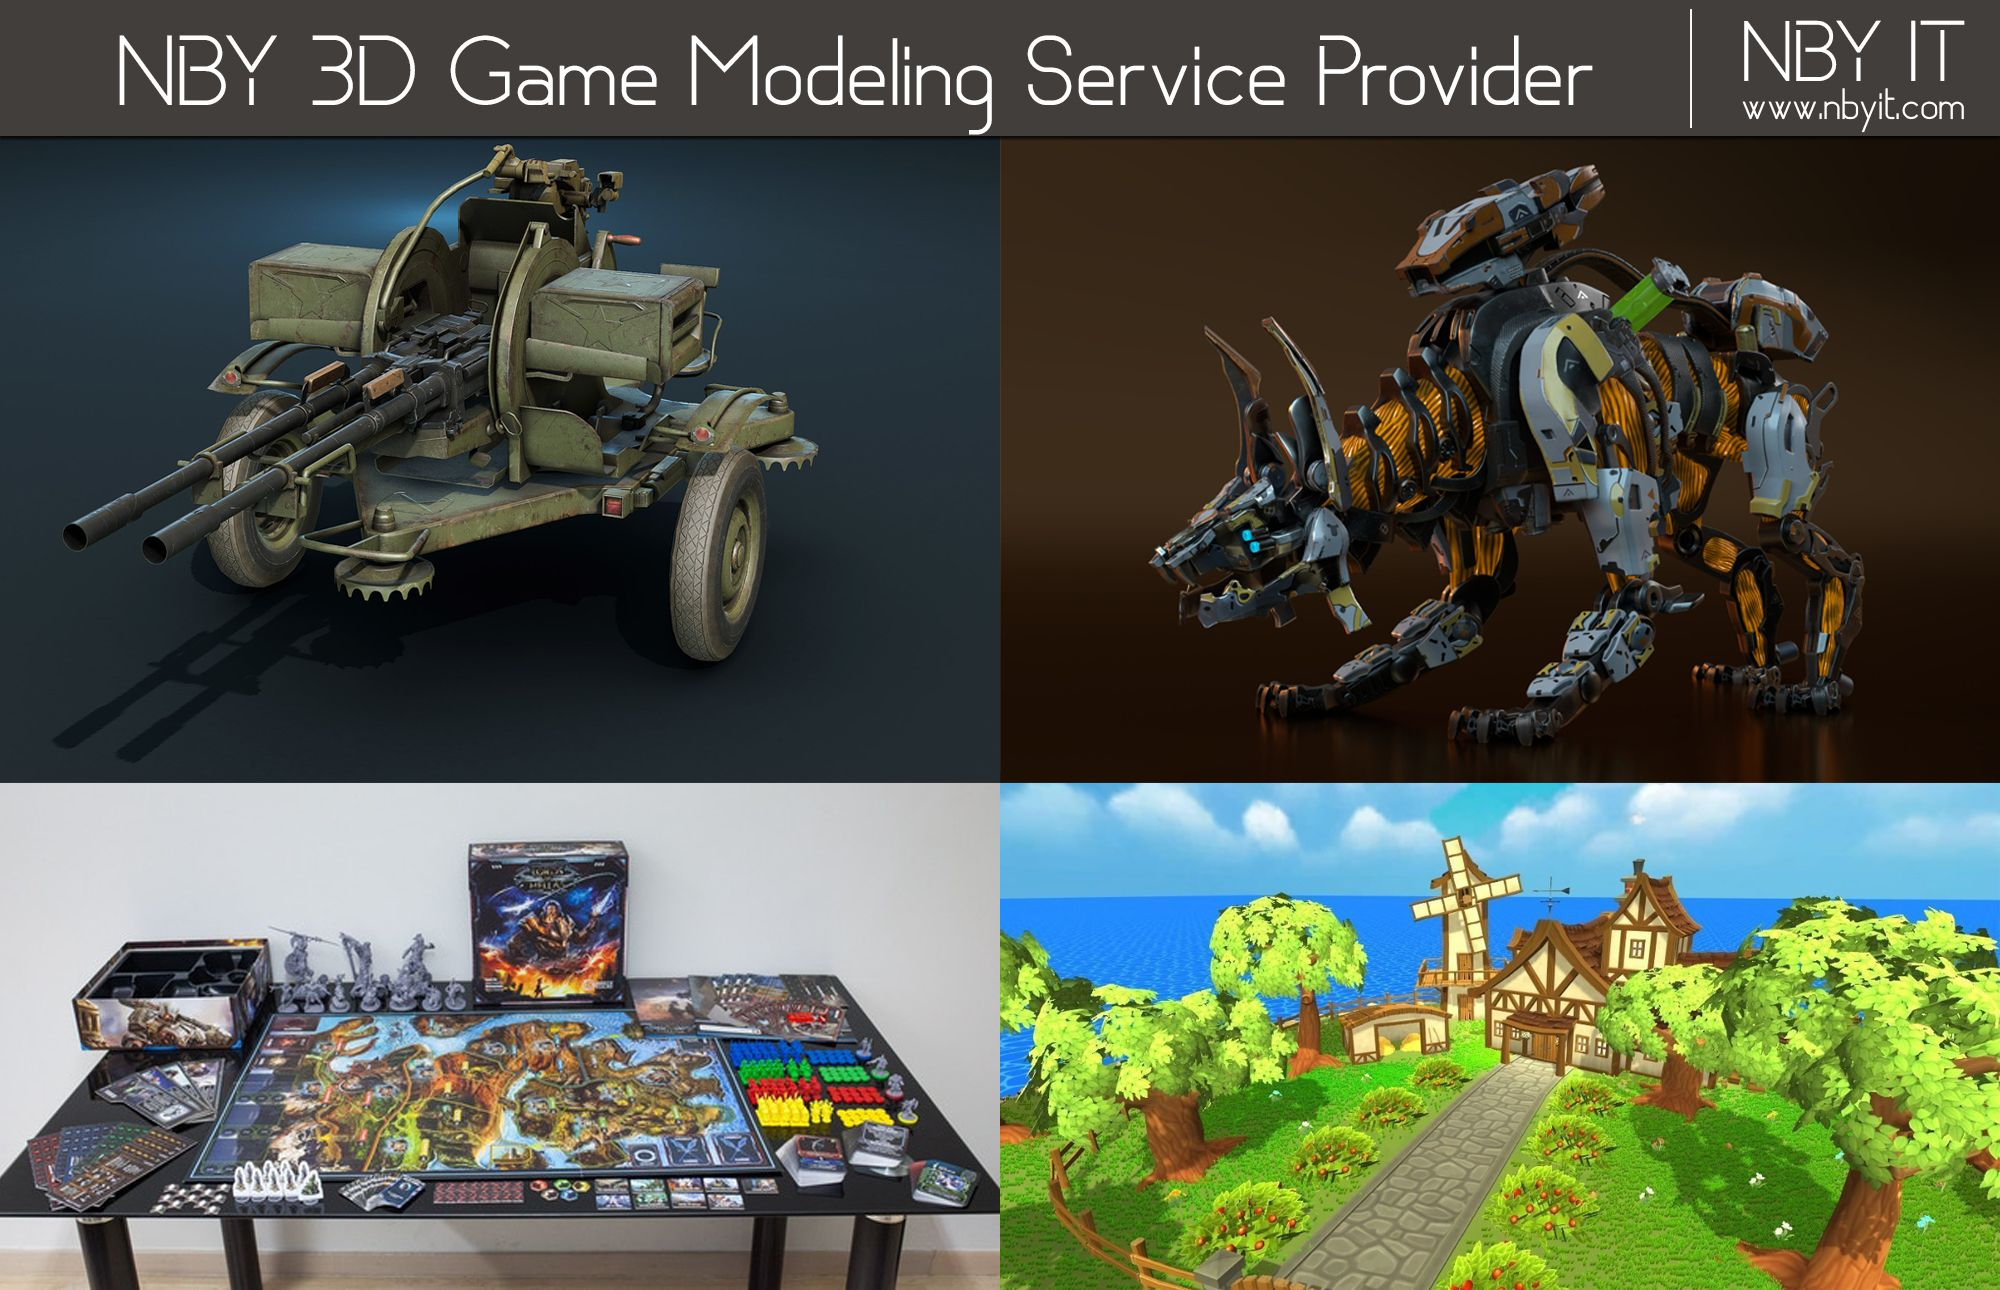 Pin by Nby ITsolution on 3D Game Modeling 3d games